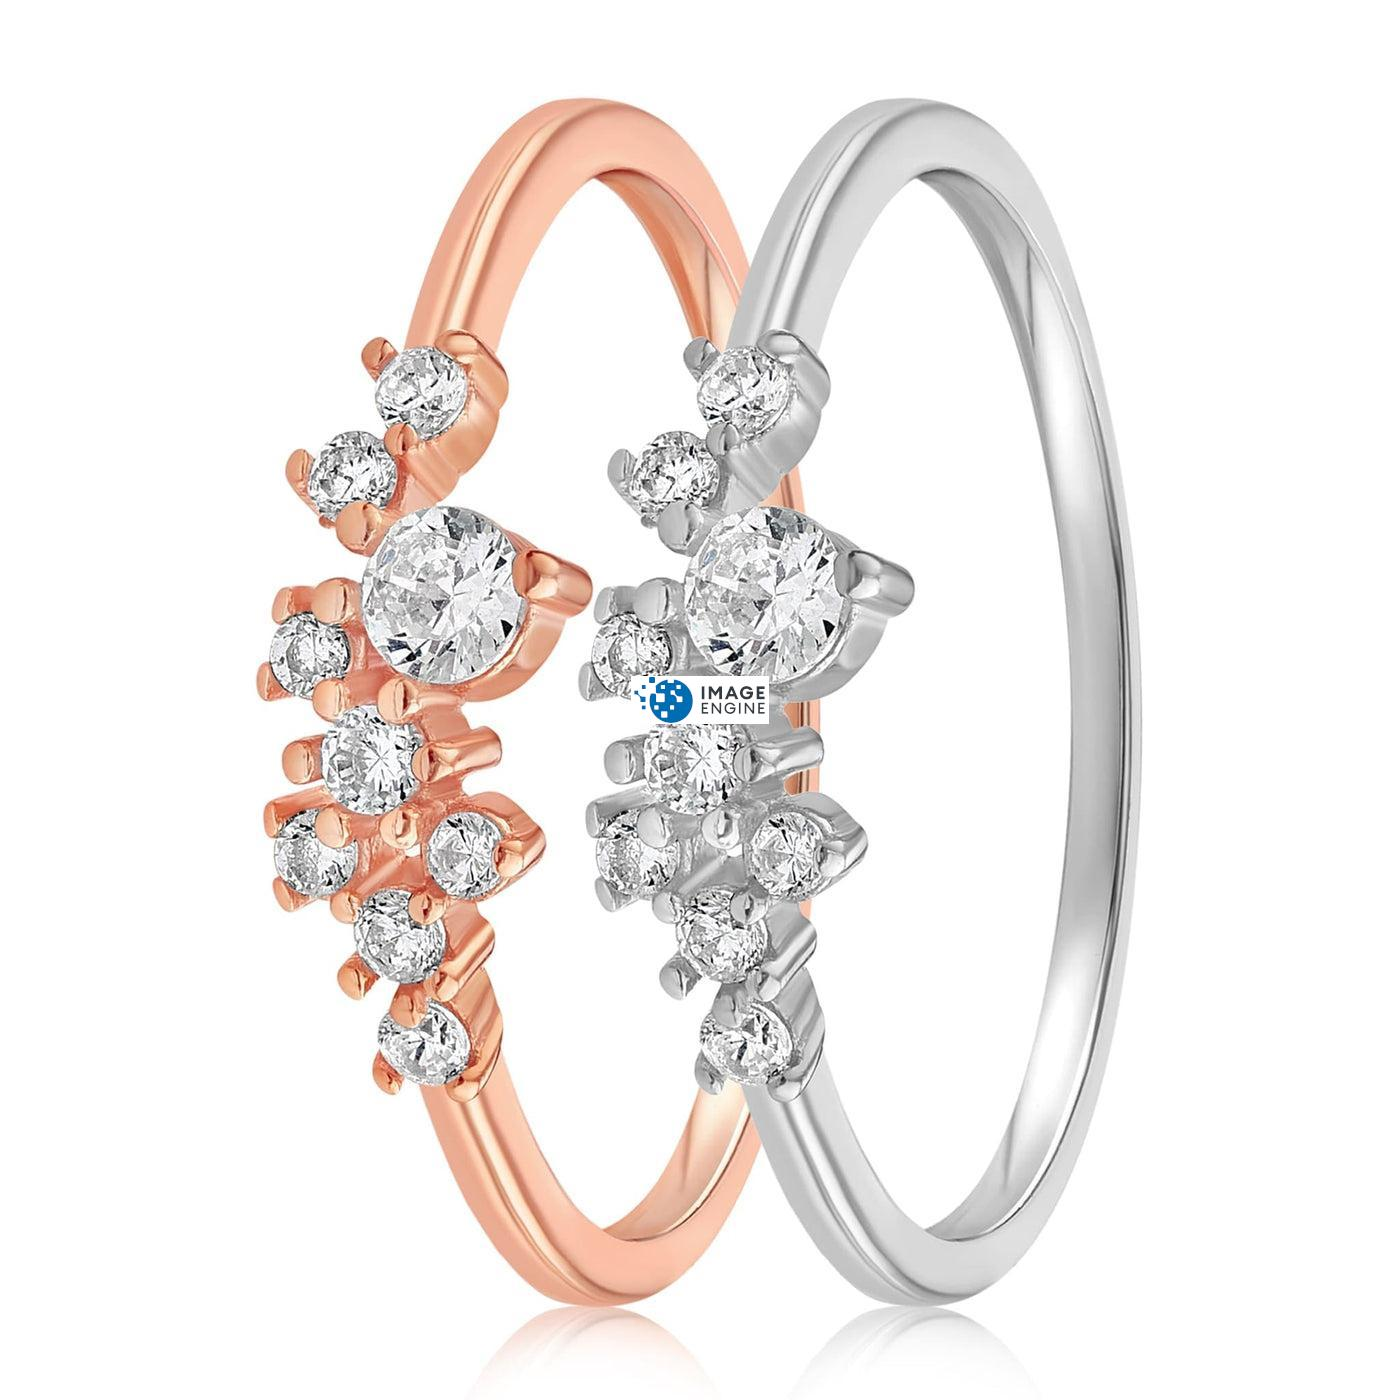 Sasha Sparkle Ring - Side by Side - 925 Sterling Silver and 18K Rose Gold Vermeil